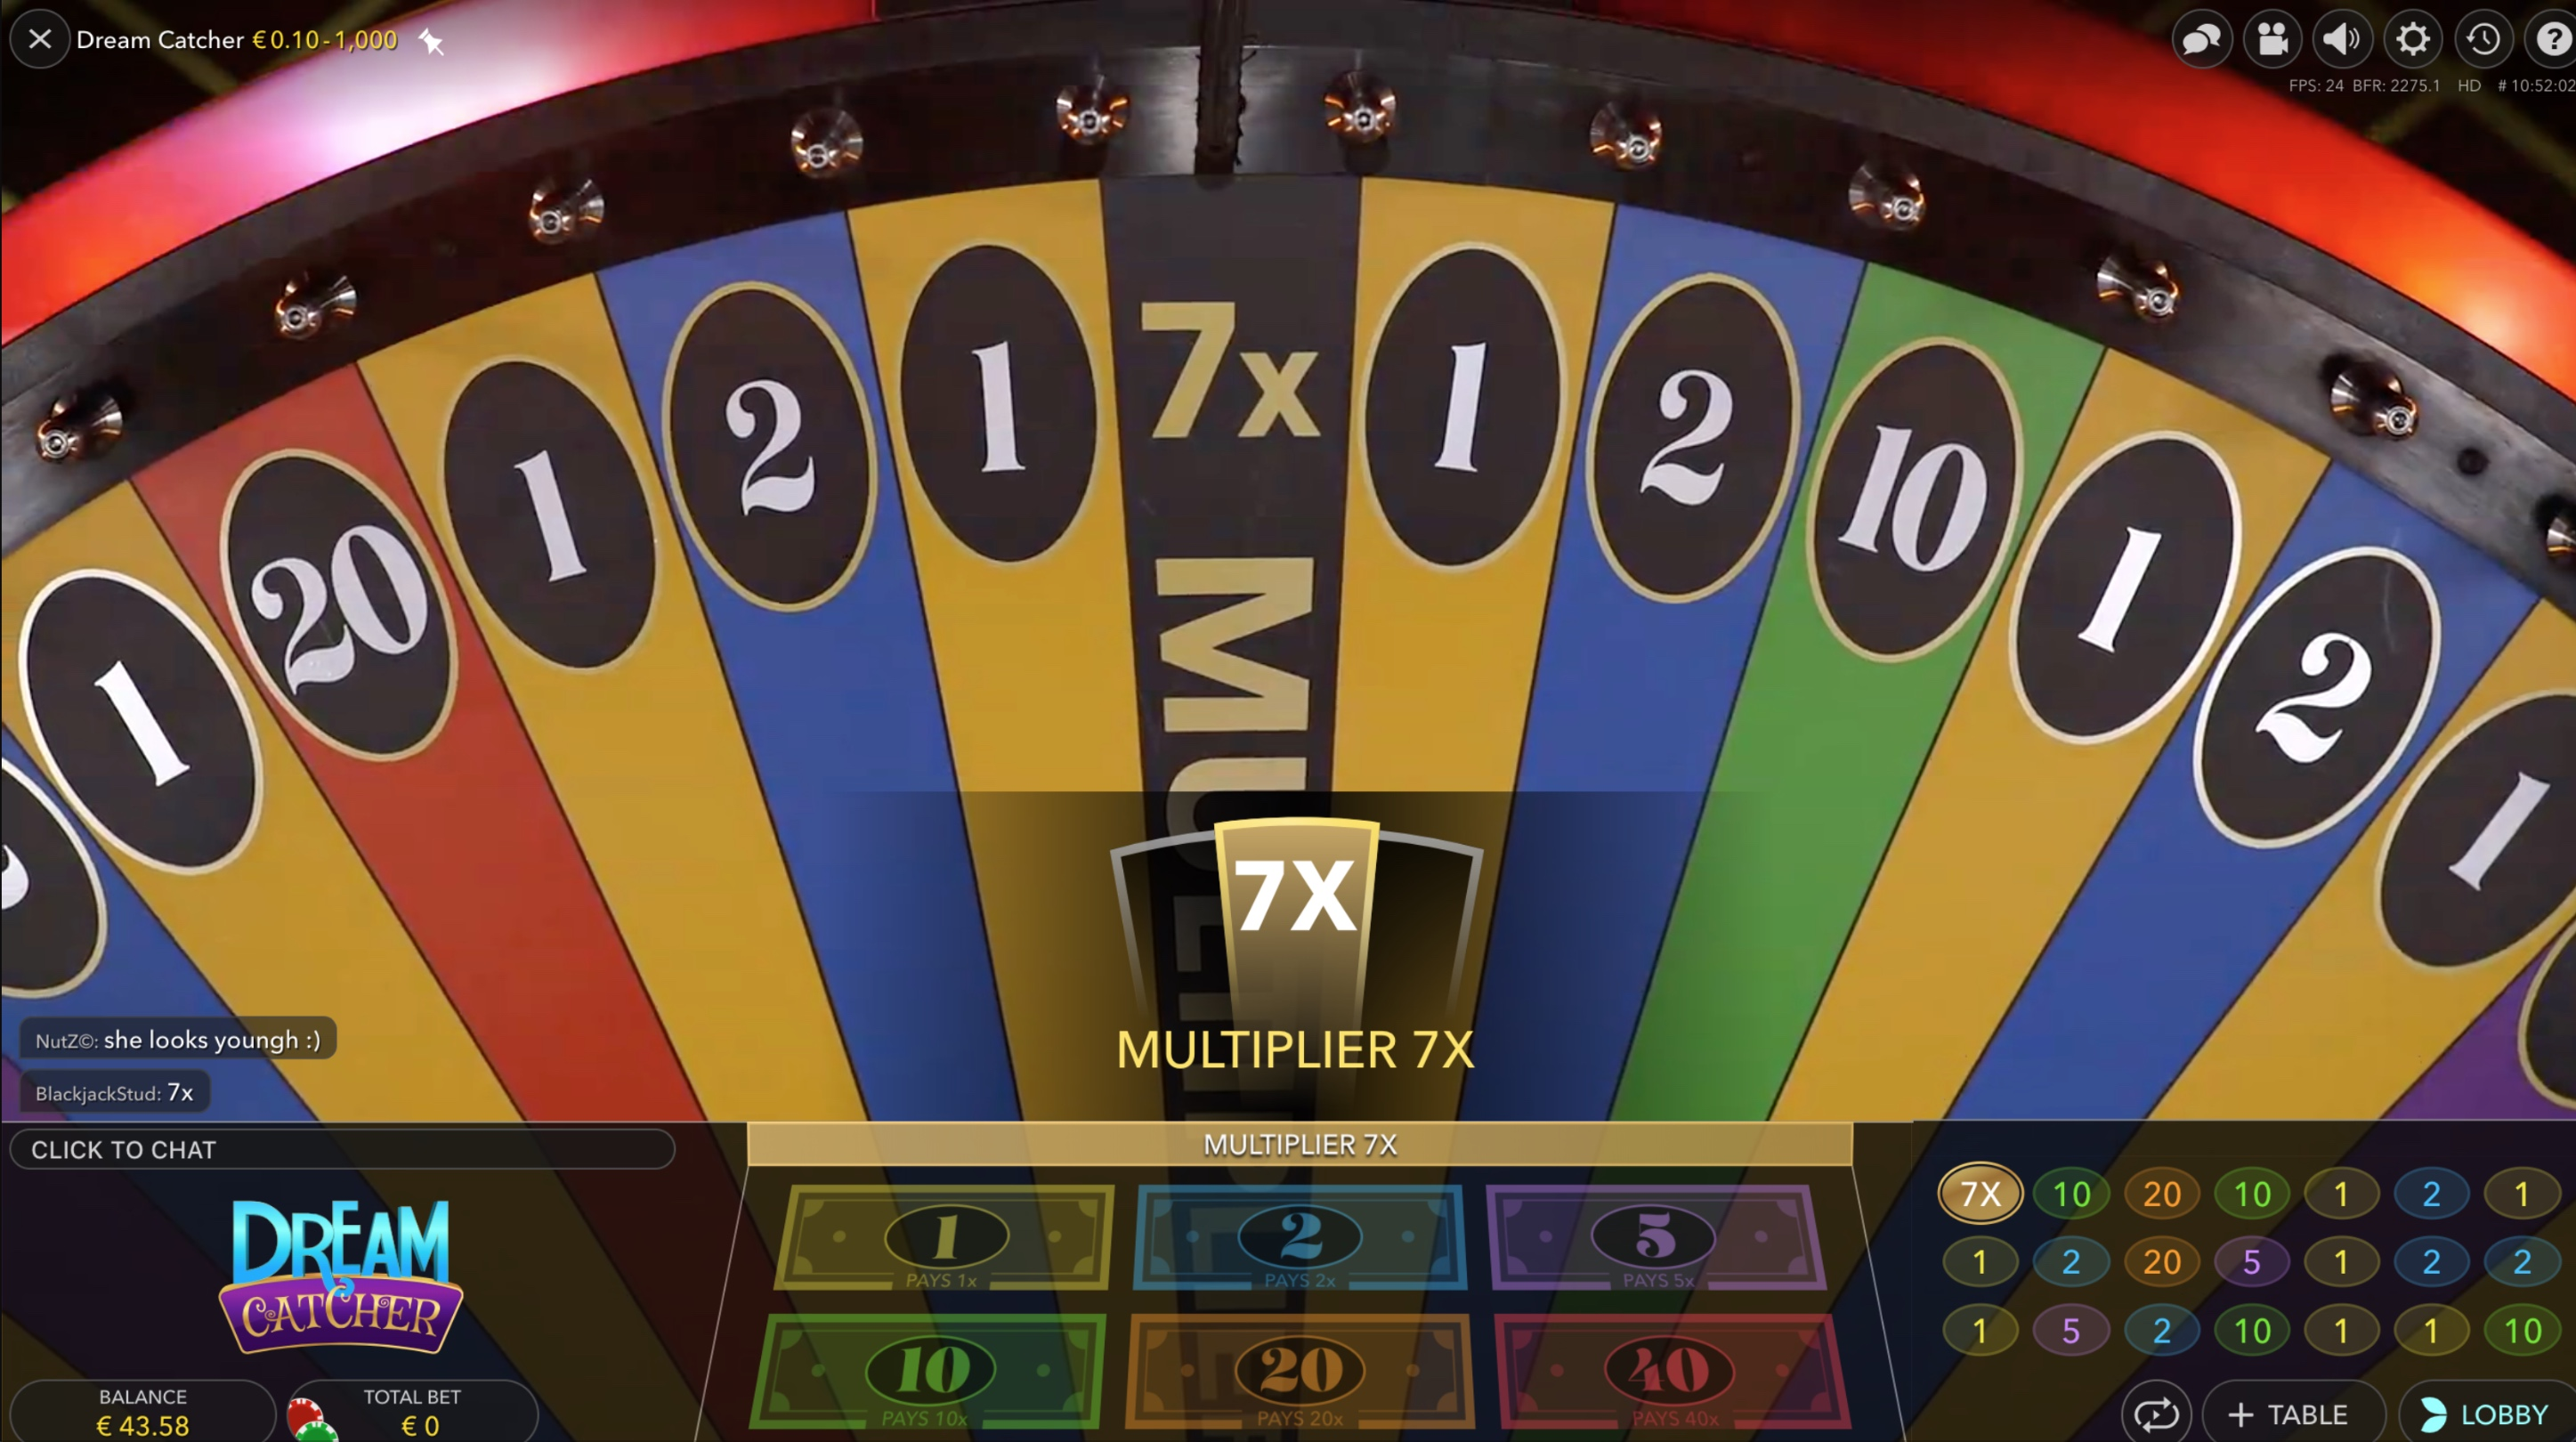 Money wheel game online multipliers _ Rata segmenti Reizinātāji